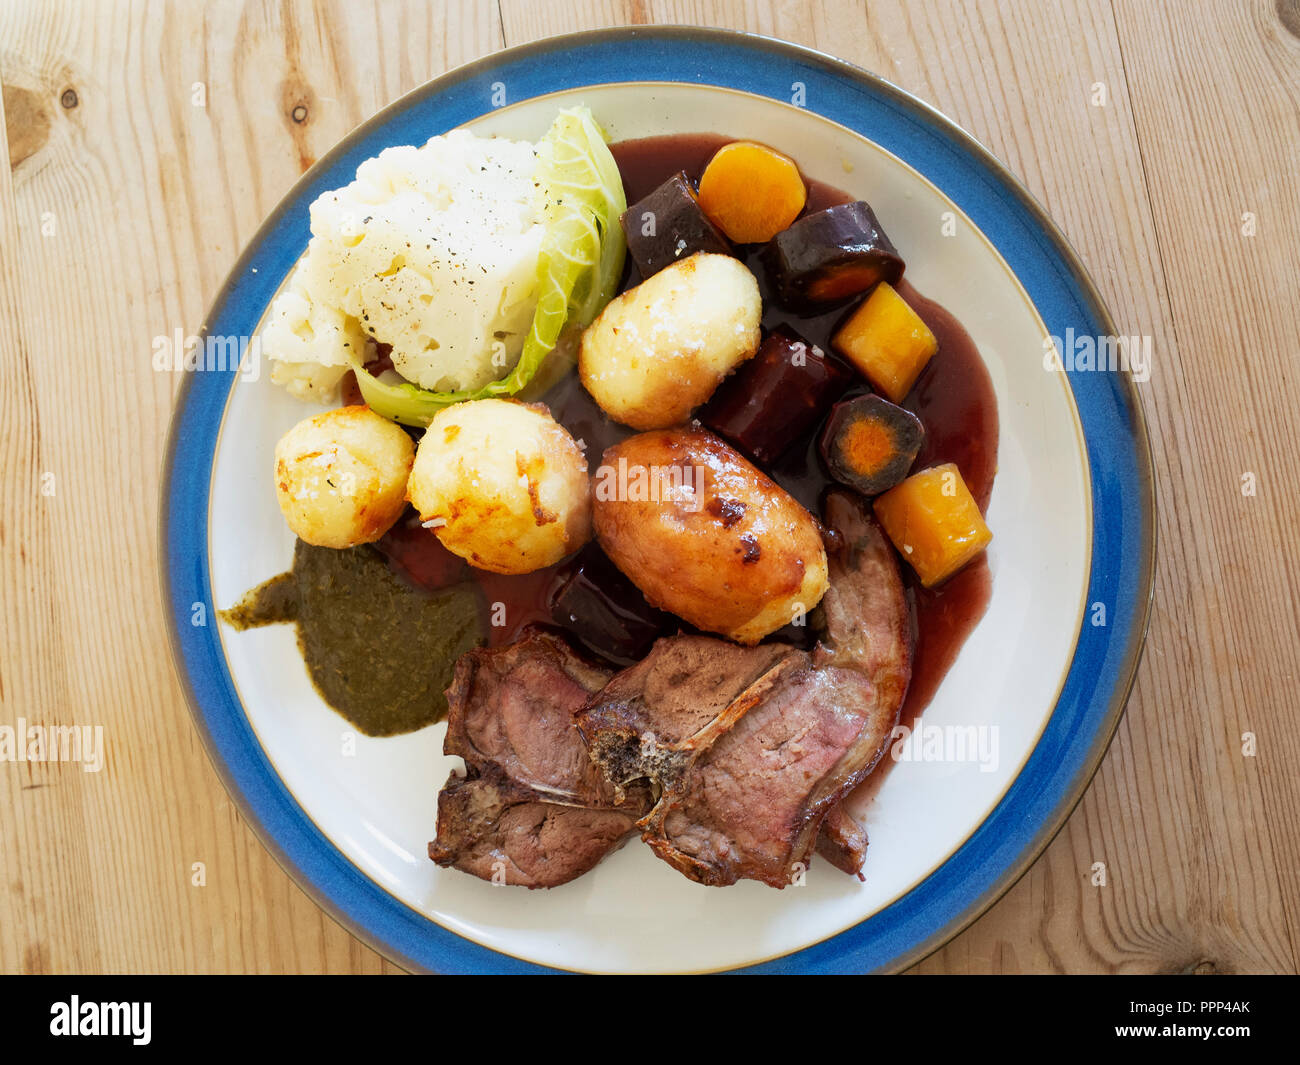 English lunch  dinner meal lamb chops roast potatoes cauliflower roasted carrots red wine gravy and mint sauce blue edge white plate on a wooden table Stock Photo